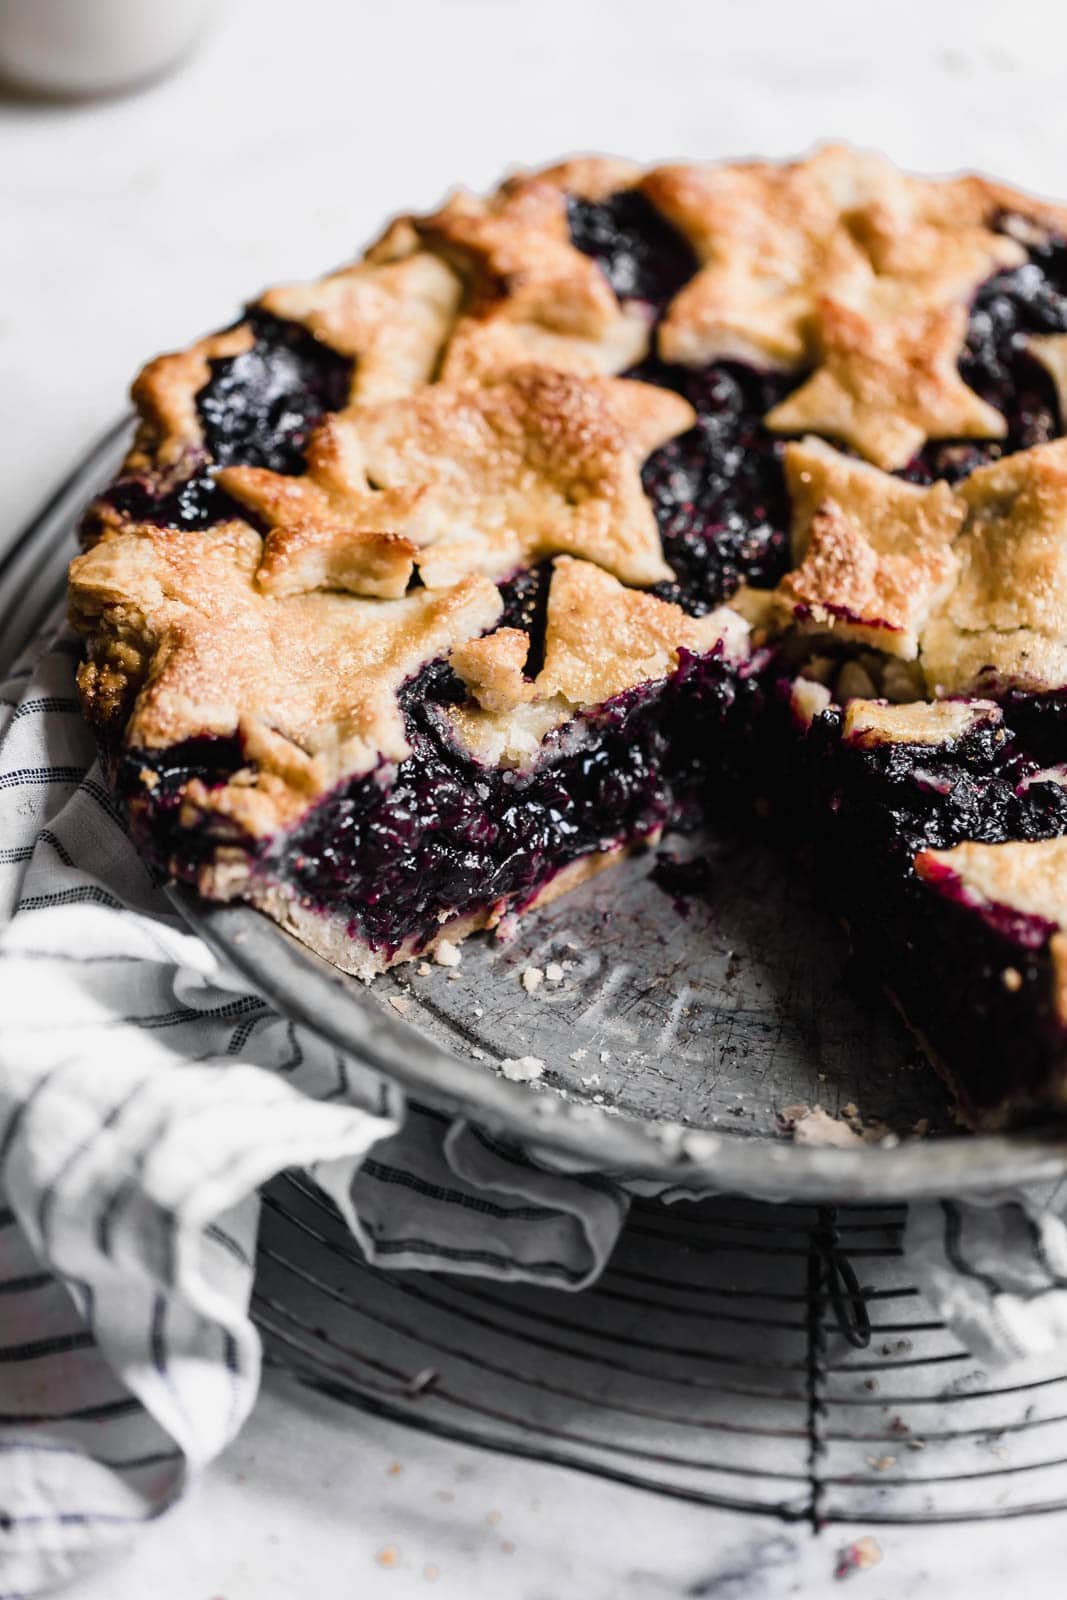 blueberry pie with slice missing